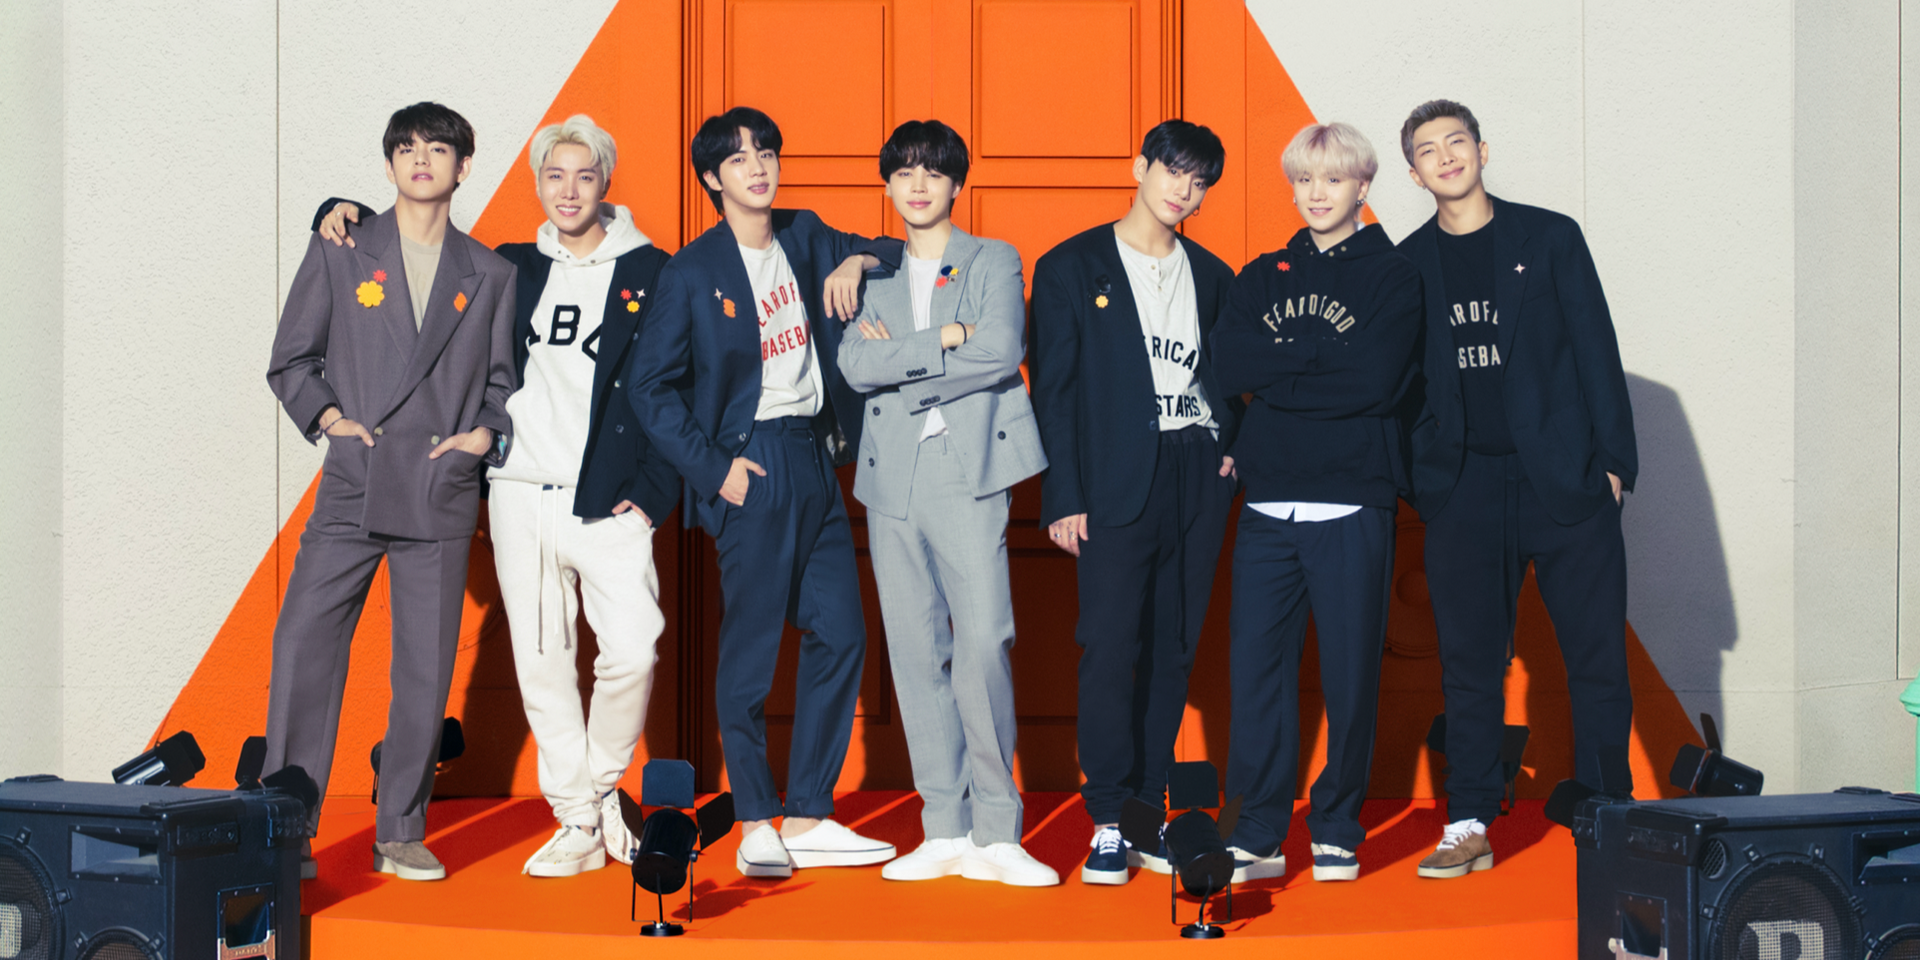 BTS announce 4 concert dates at SoFi Stadium in Los Angeles, here's everything you need to know